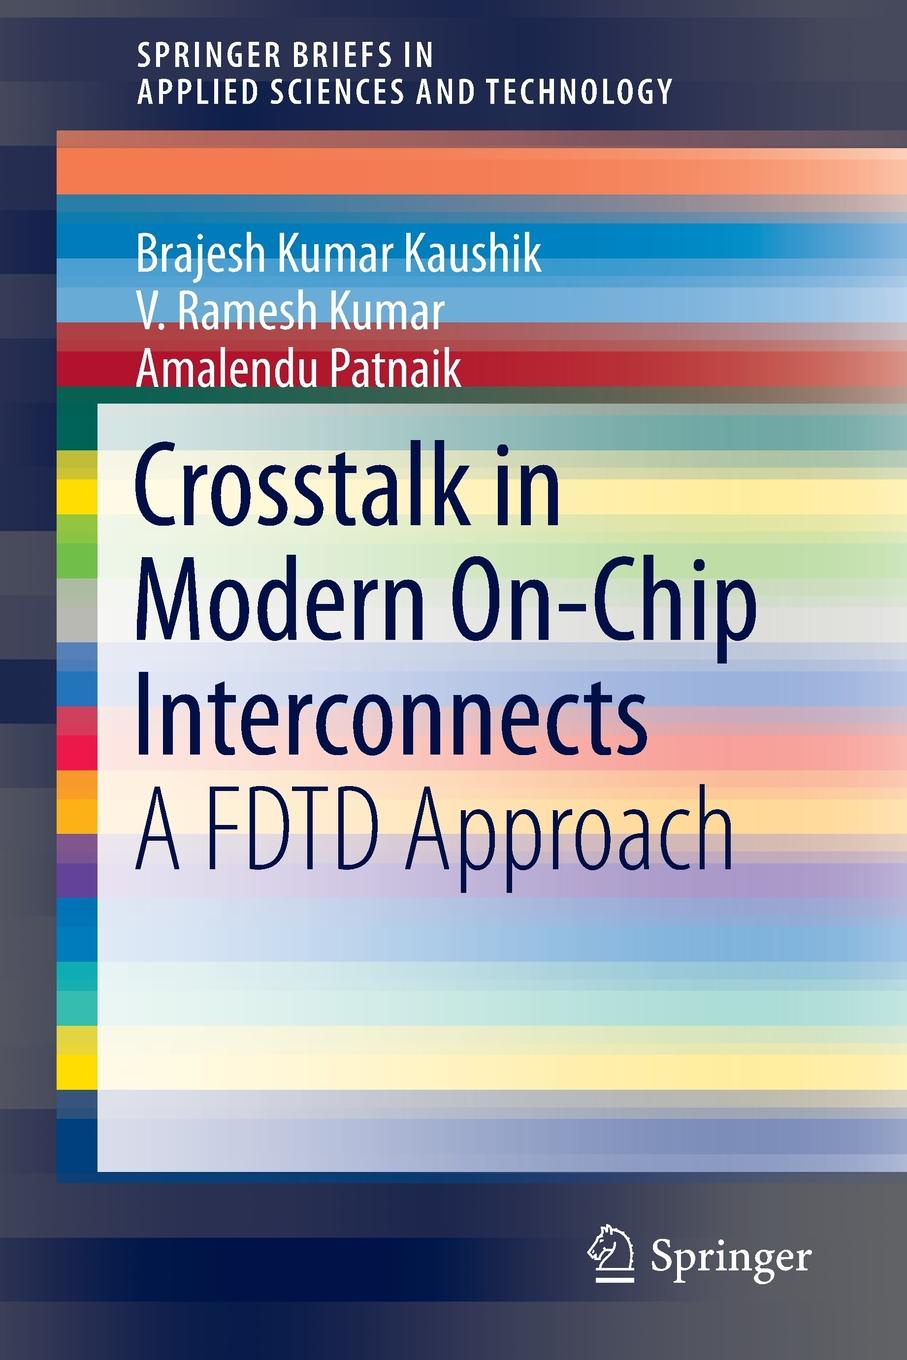 B.K. Kaushik, V. Ramesh Kumar, Amalendu Patnaik Crosstalk in Modern On-Chip Interconnects. A FDTD Approach